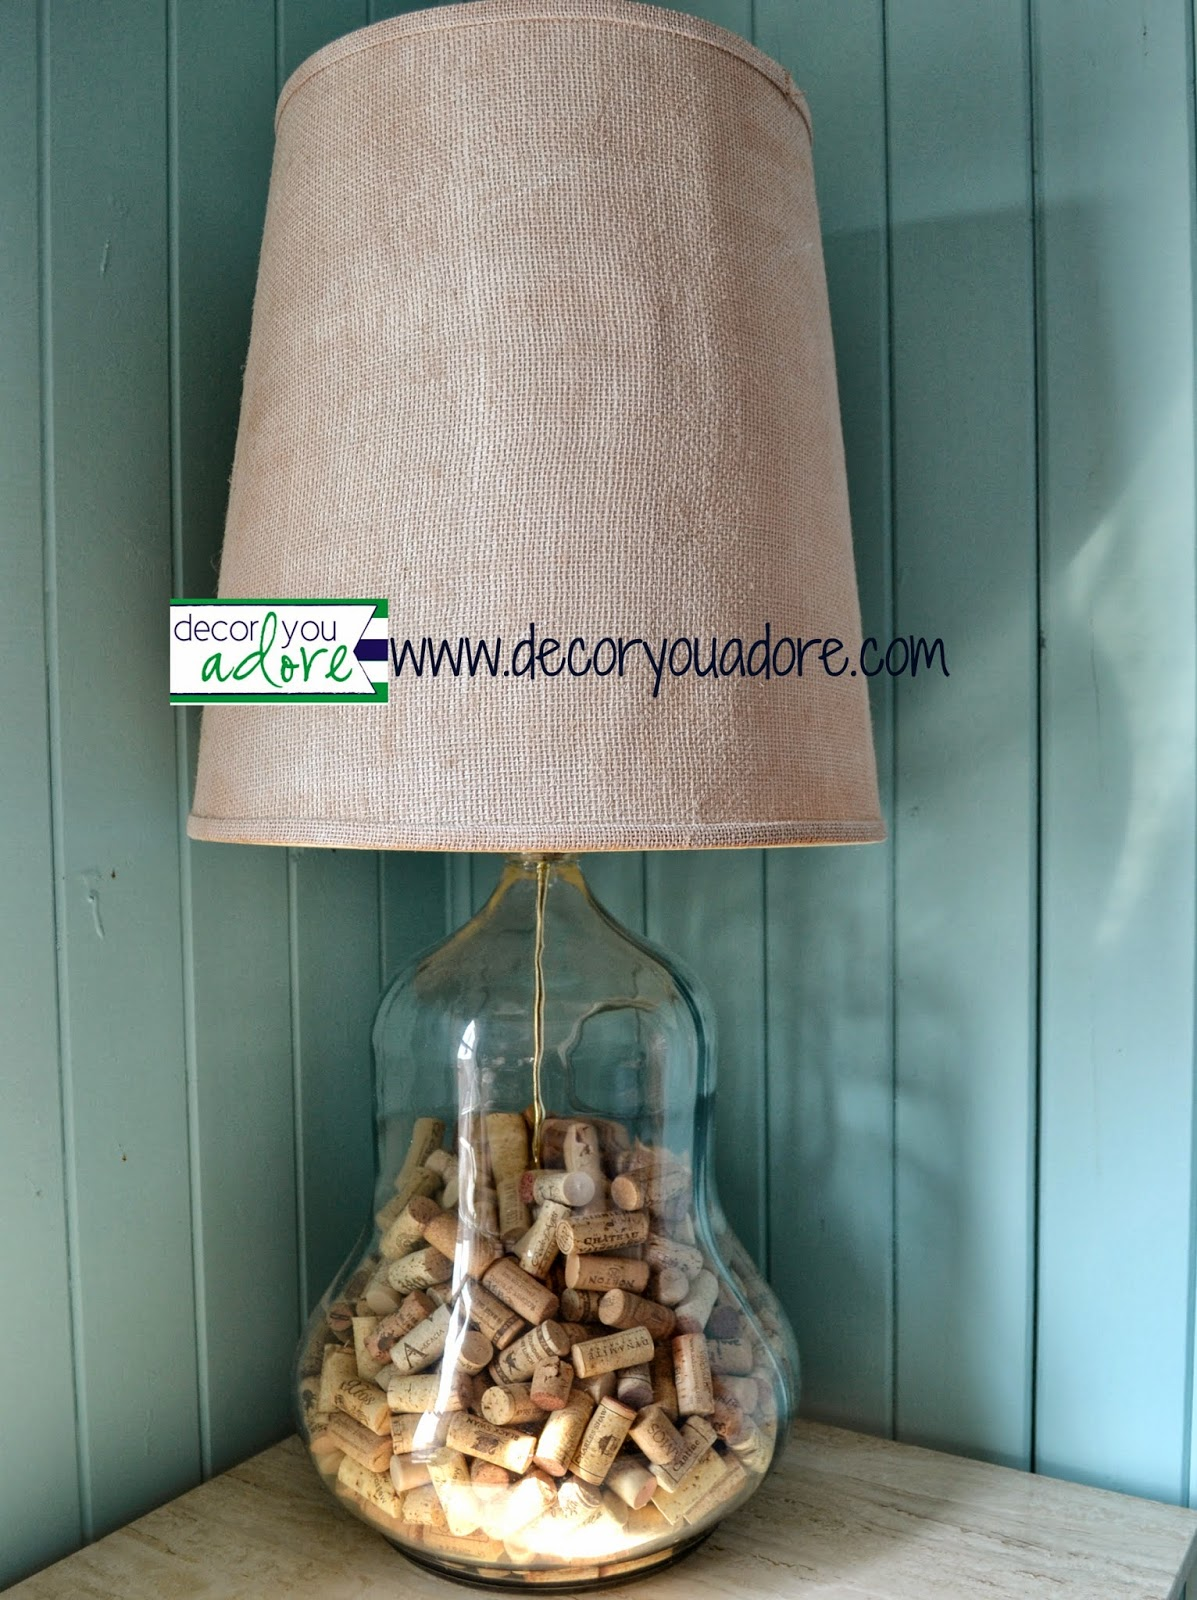 Decor you adore flea market find a diy collection lamp for Wine cork lampshade